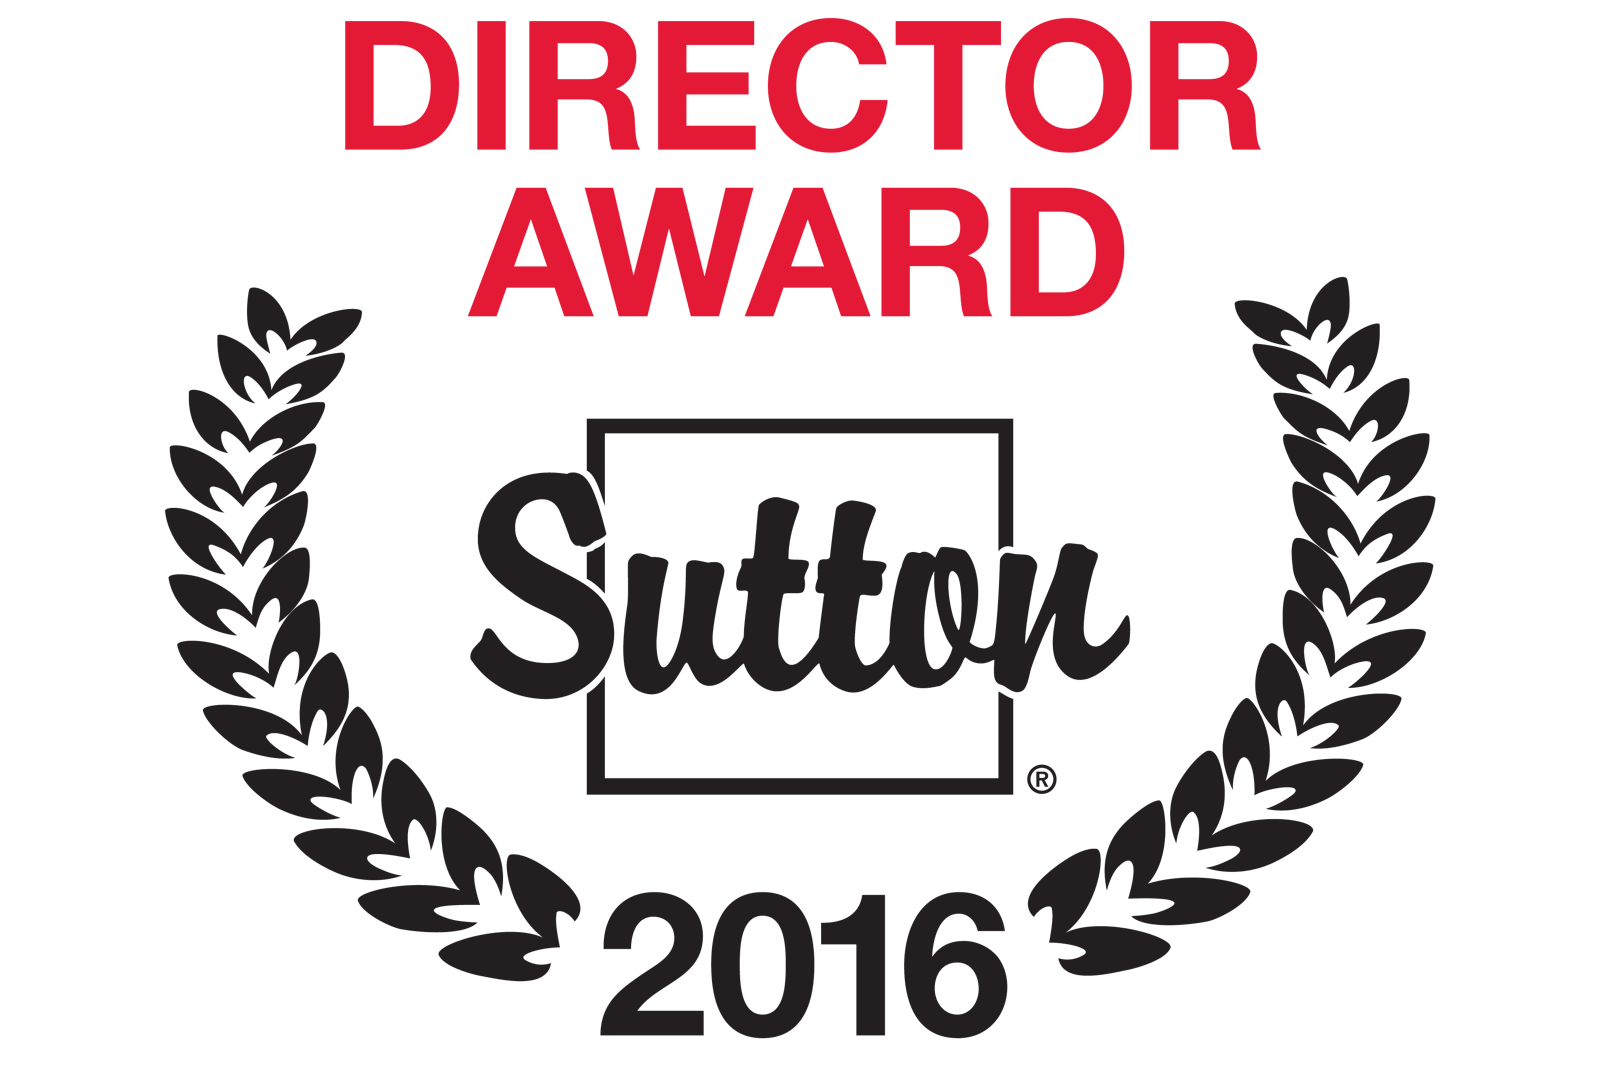 Director Award Sutton 2016